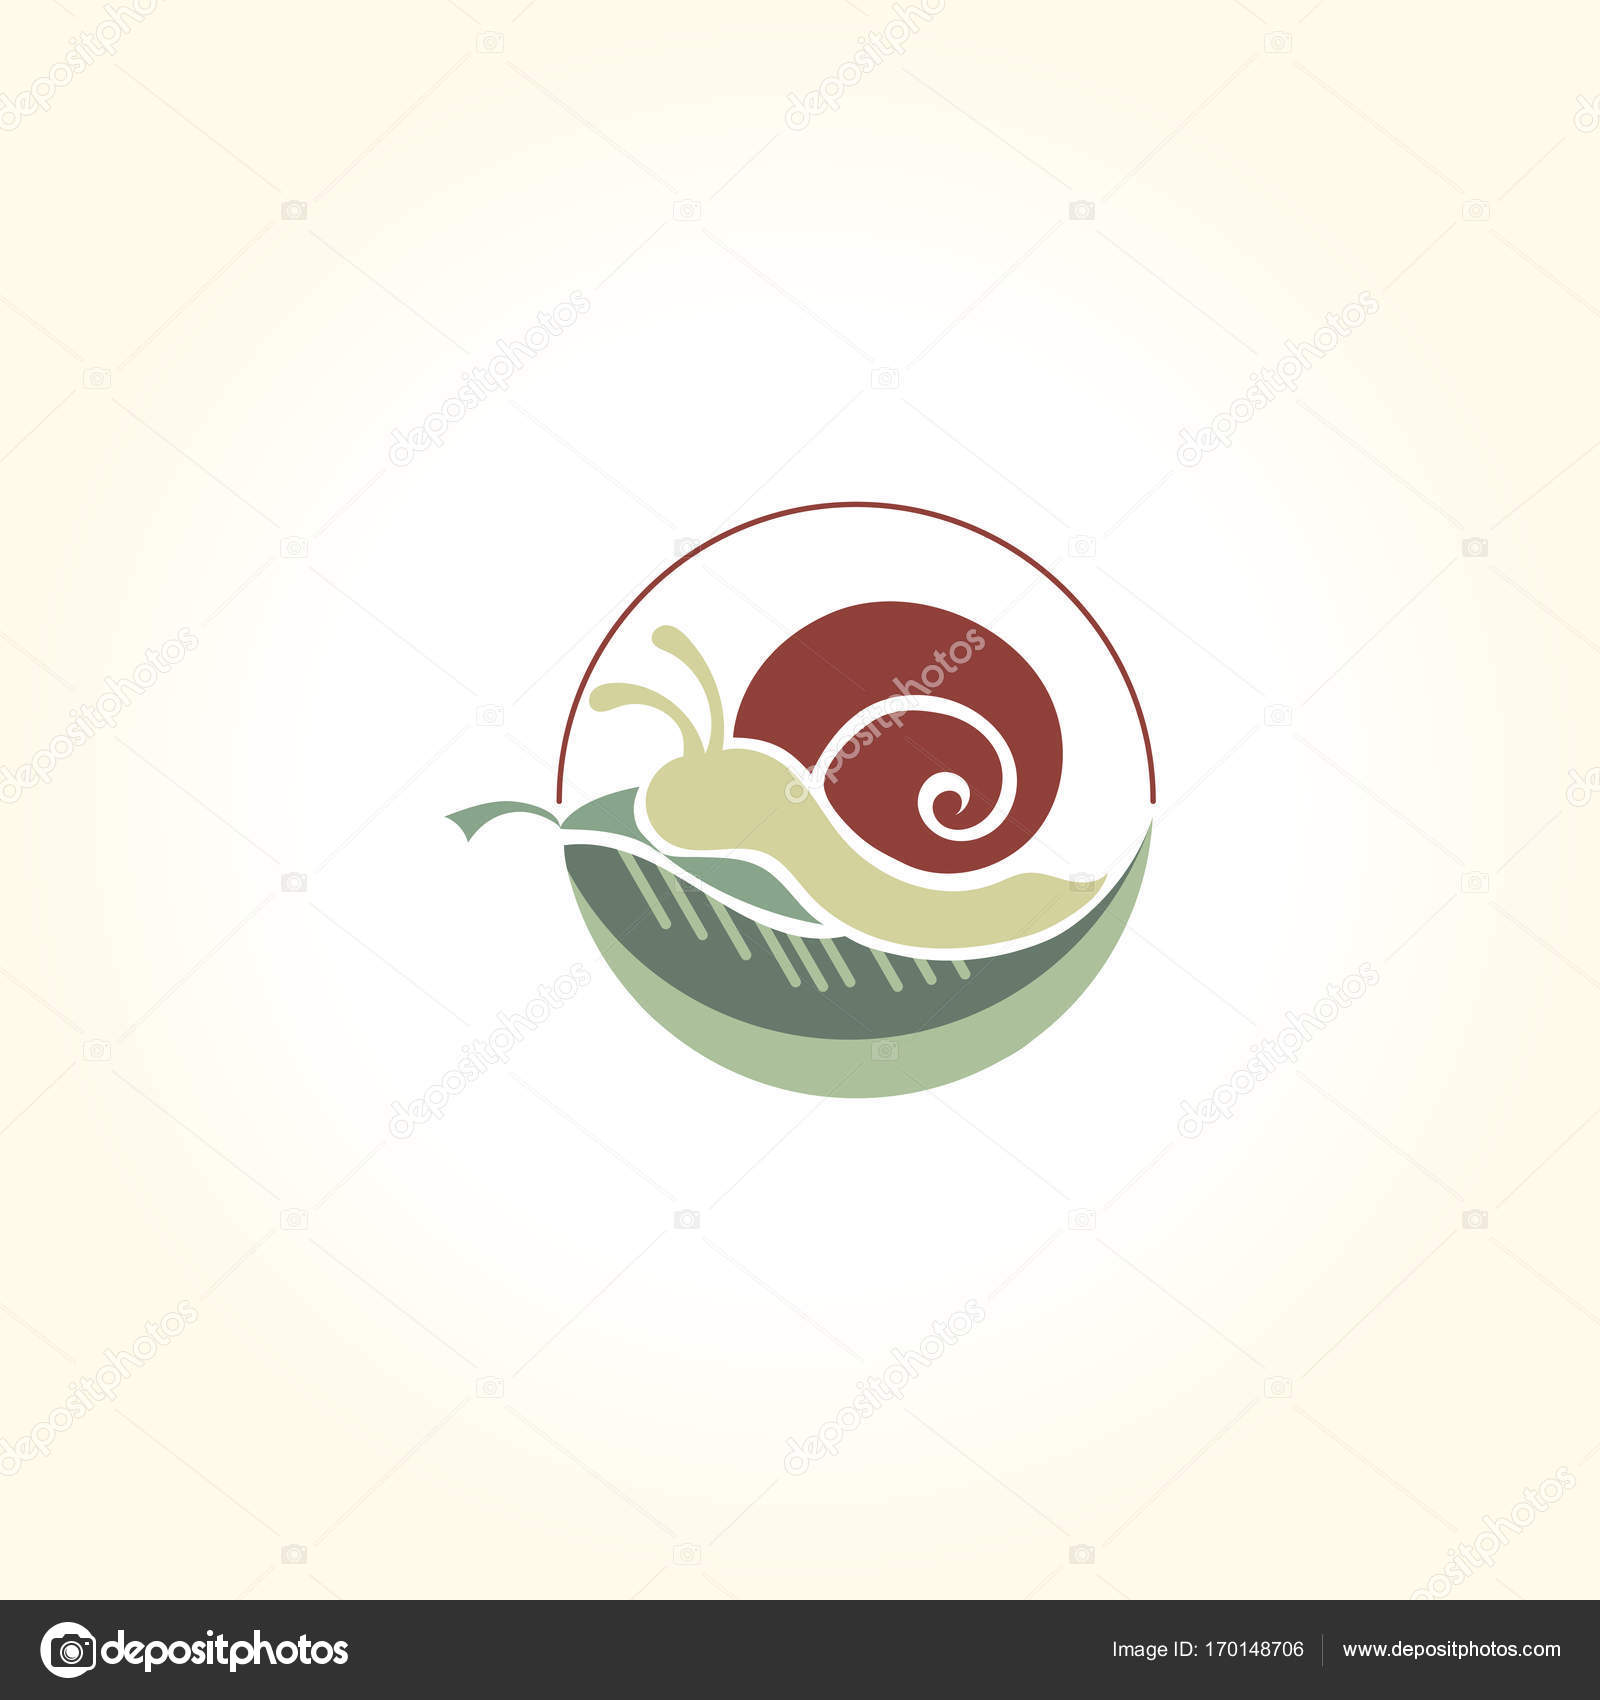 snail logo abstract design vector template negative space style wild